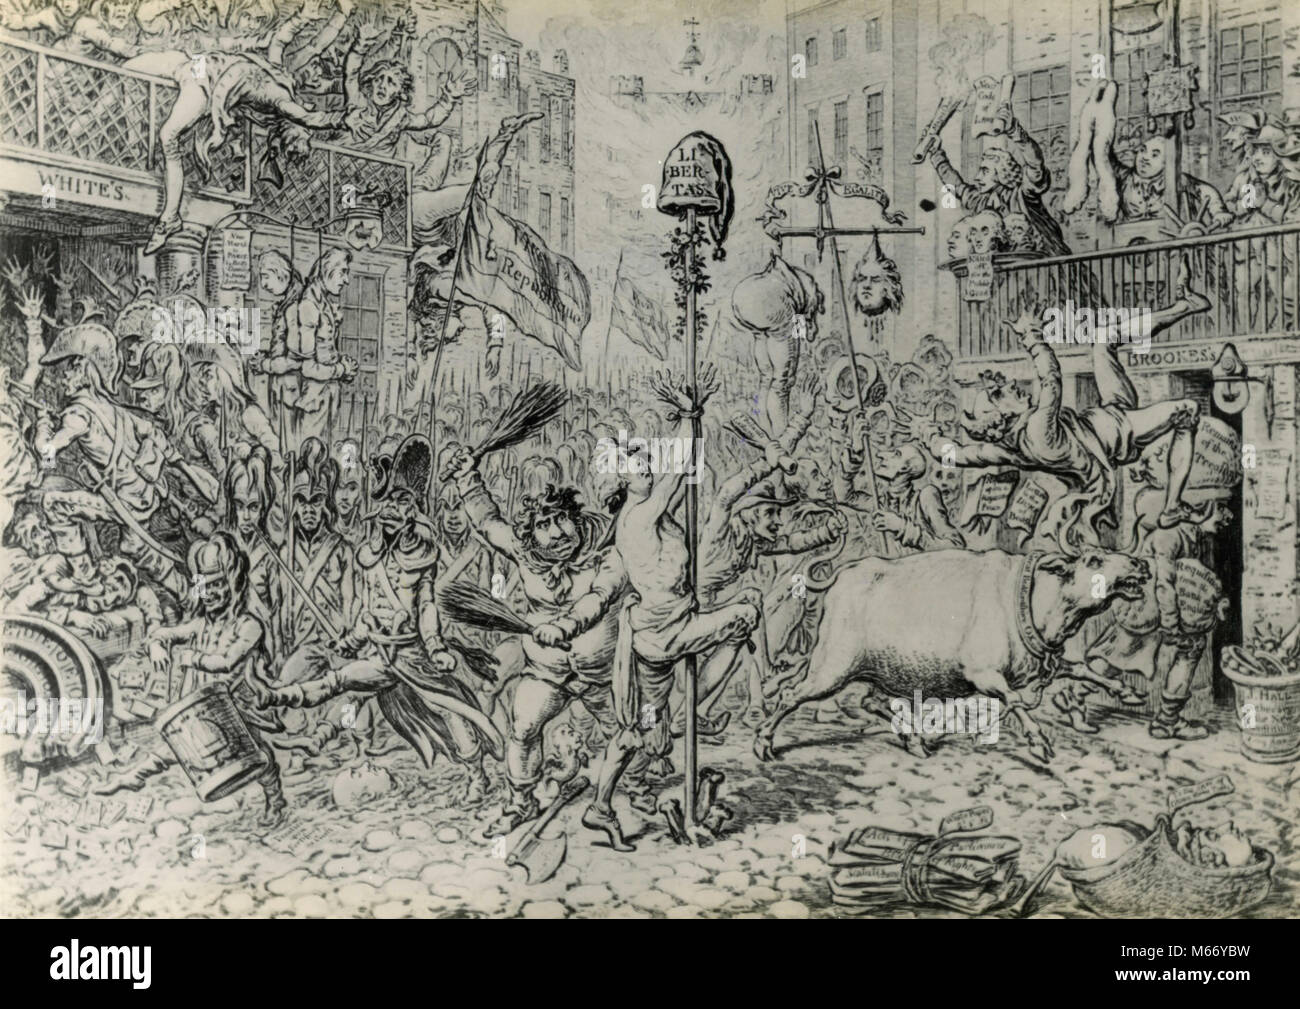 Cartoon of the horrors which the French invasion would bring to England with Fox in the foreground, UK 1790s - Stock Image